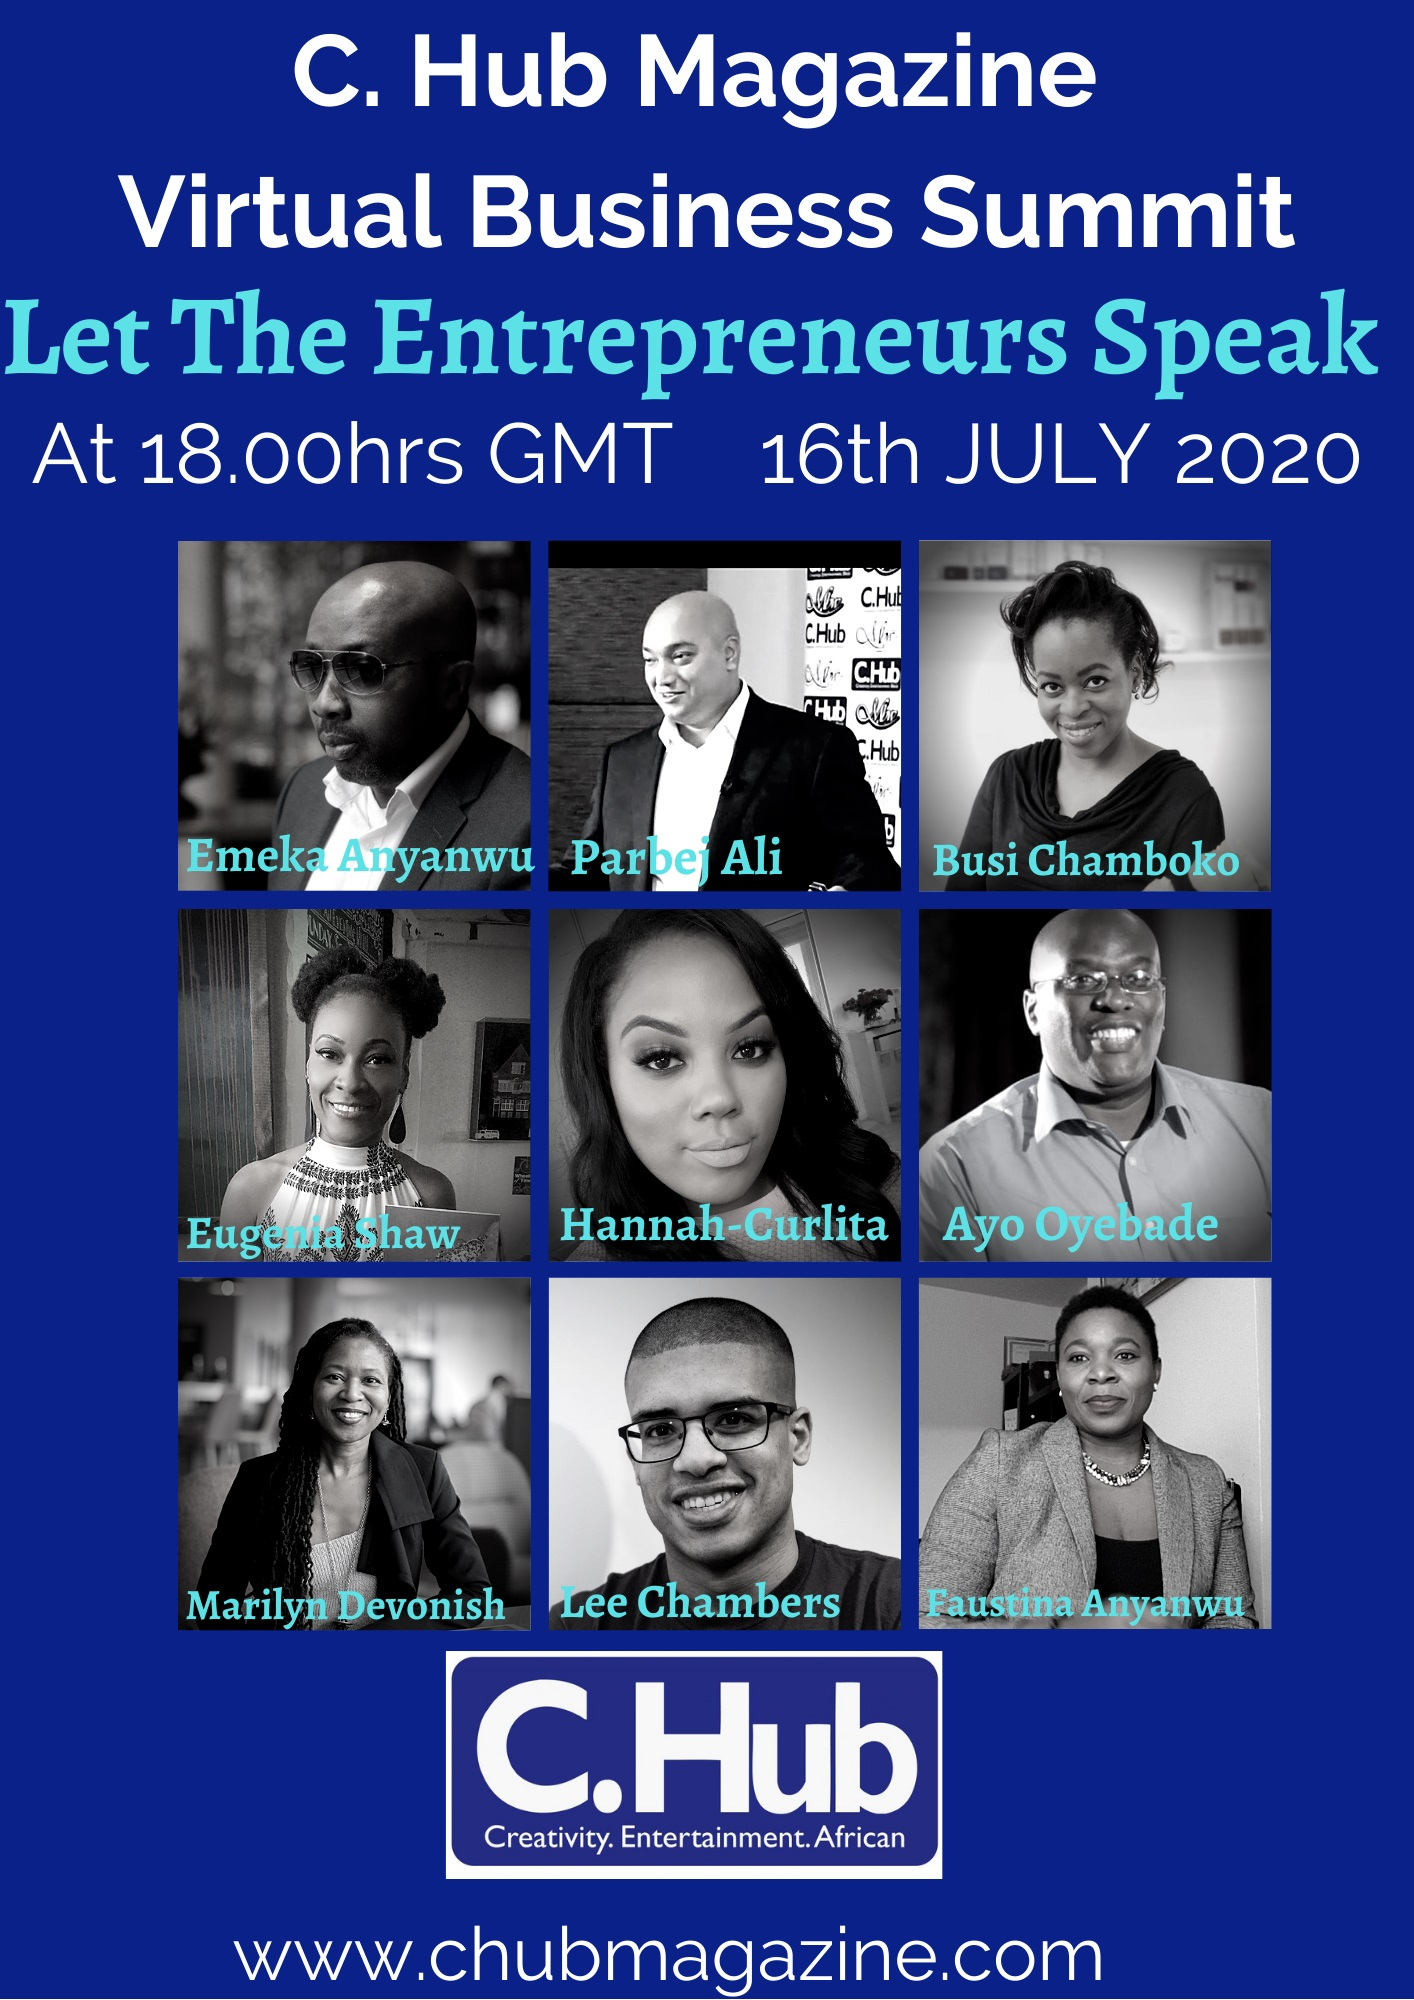 Let The Entrepreneurs Speak: Virtual Business Summit Featuring Lee Chambers